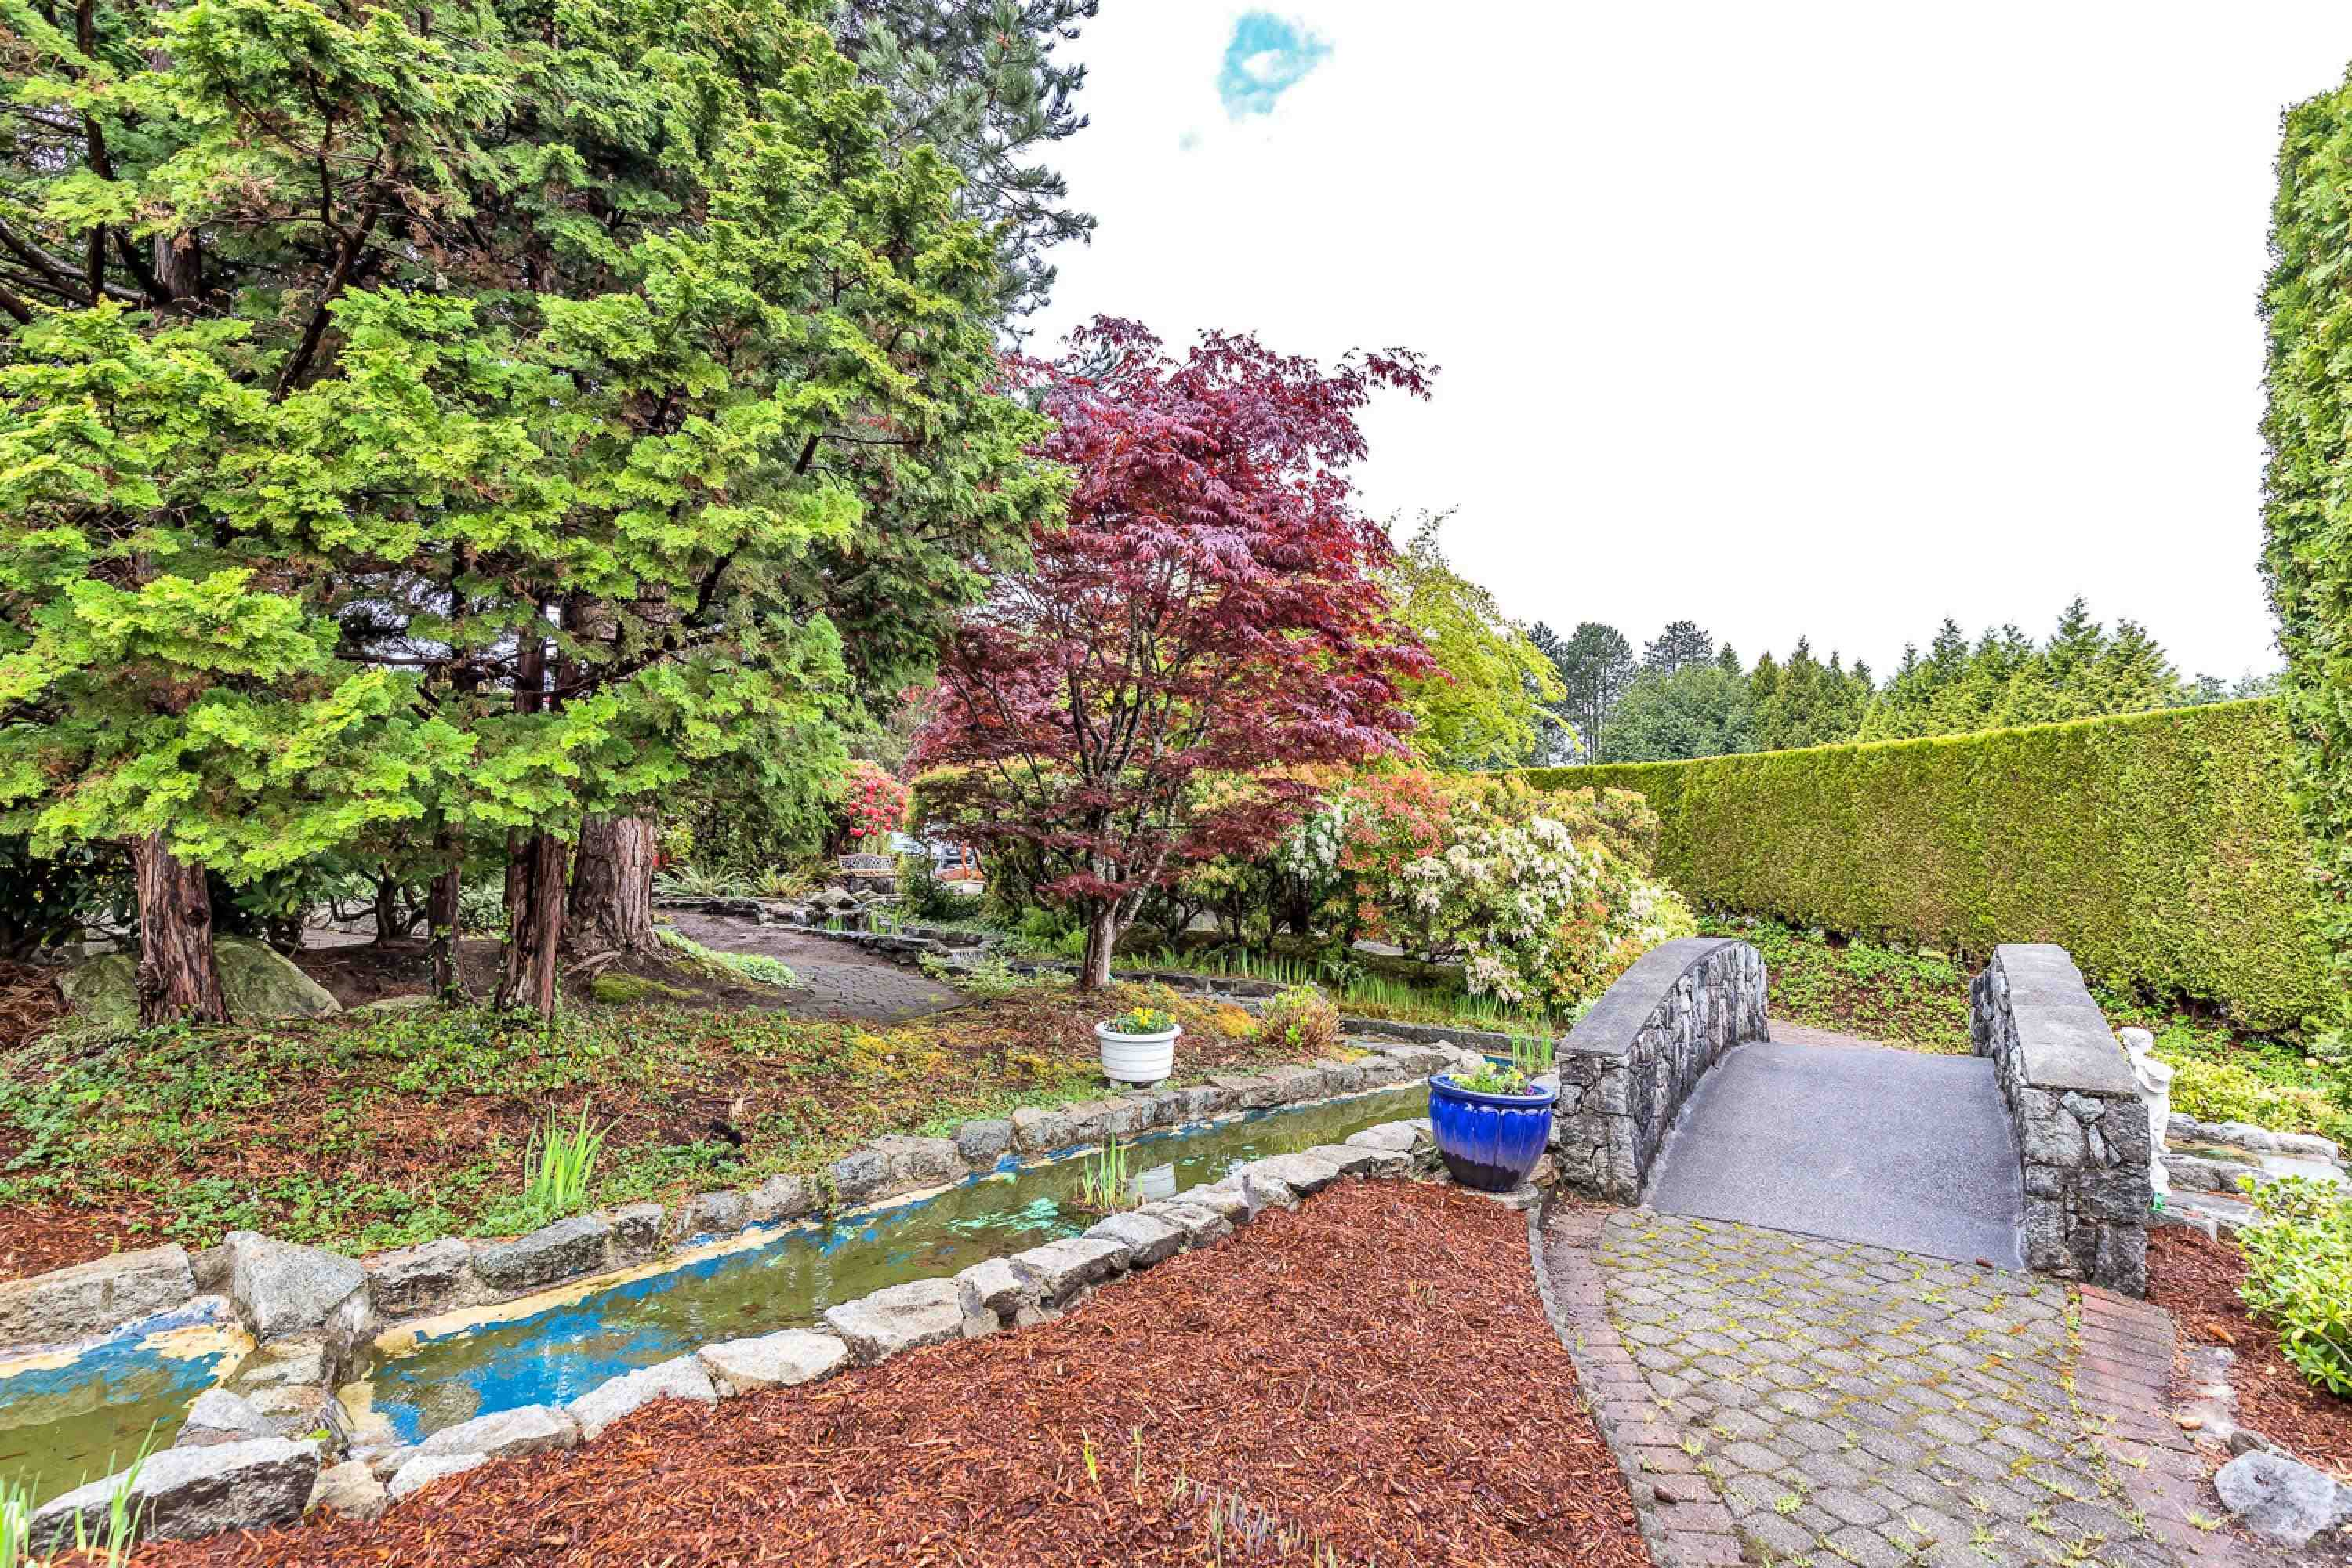 44 13507 81 AVENUE - Queen Mary Park Surrey Manufactured with Land for sale, 2 Bedrooms (R2624906) - #32